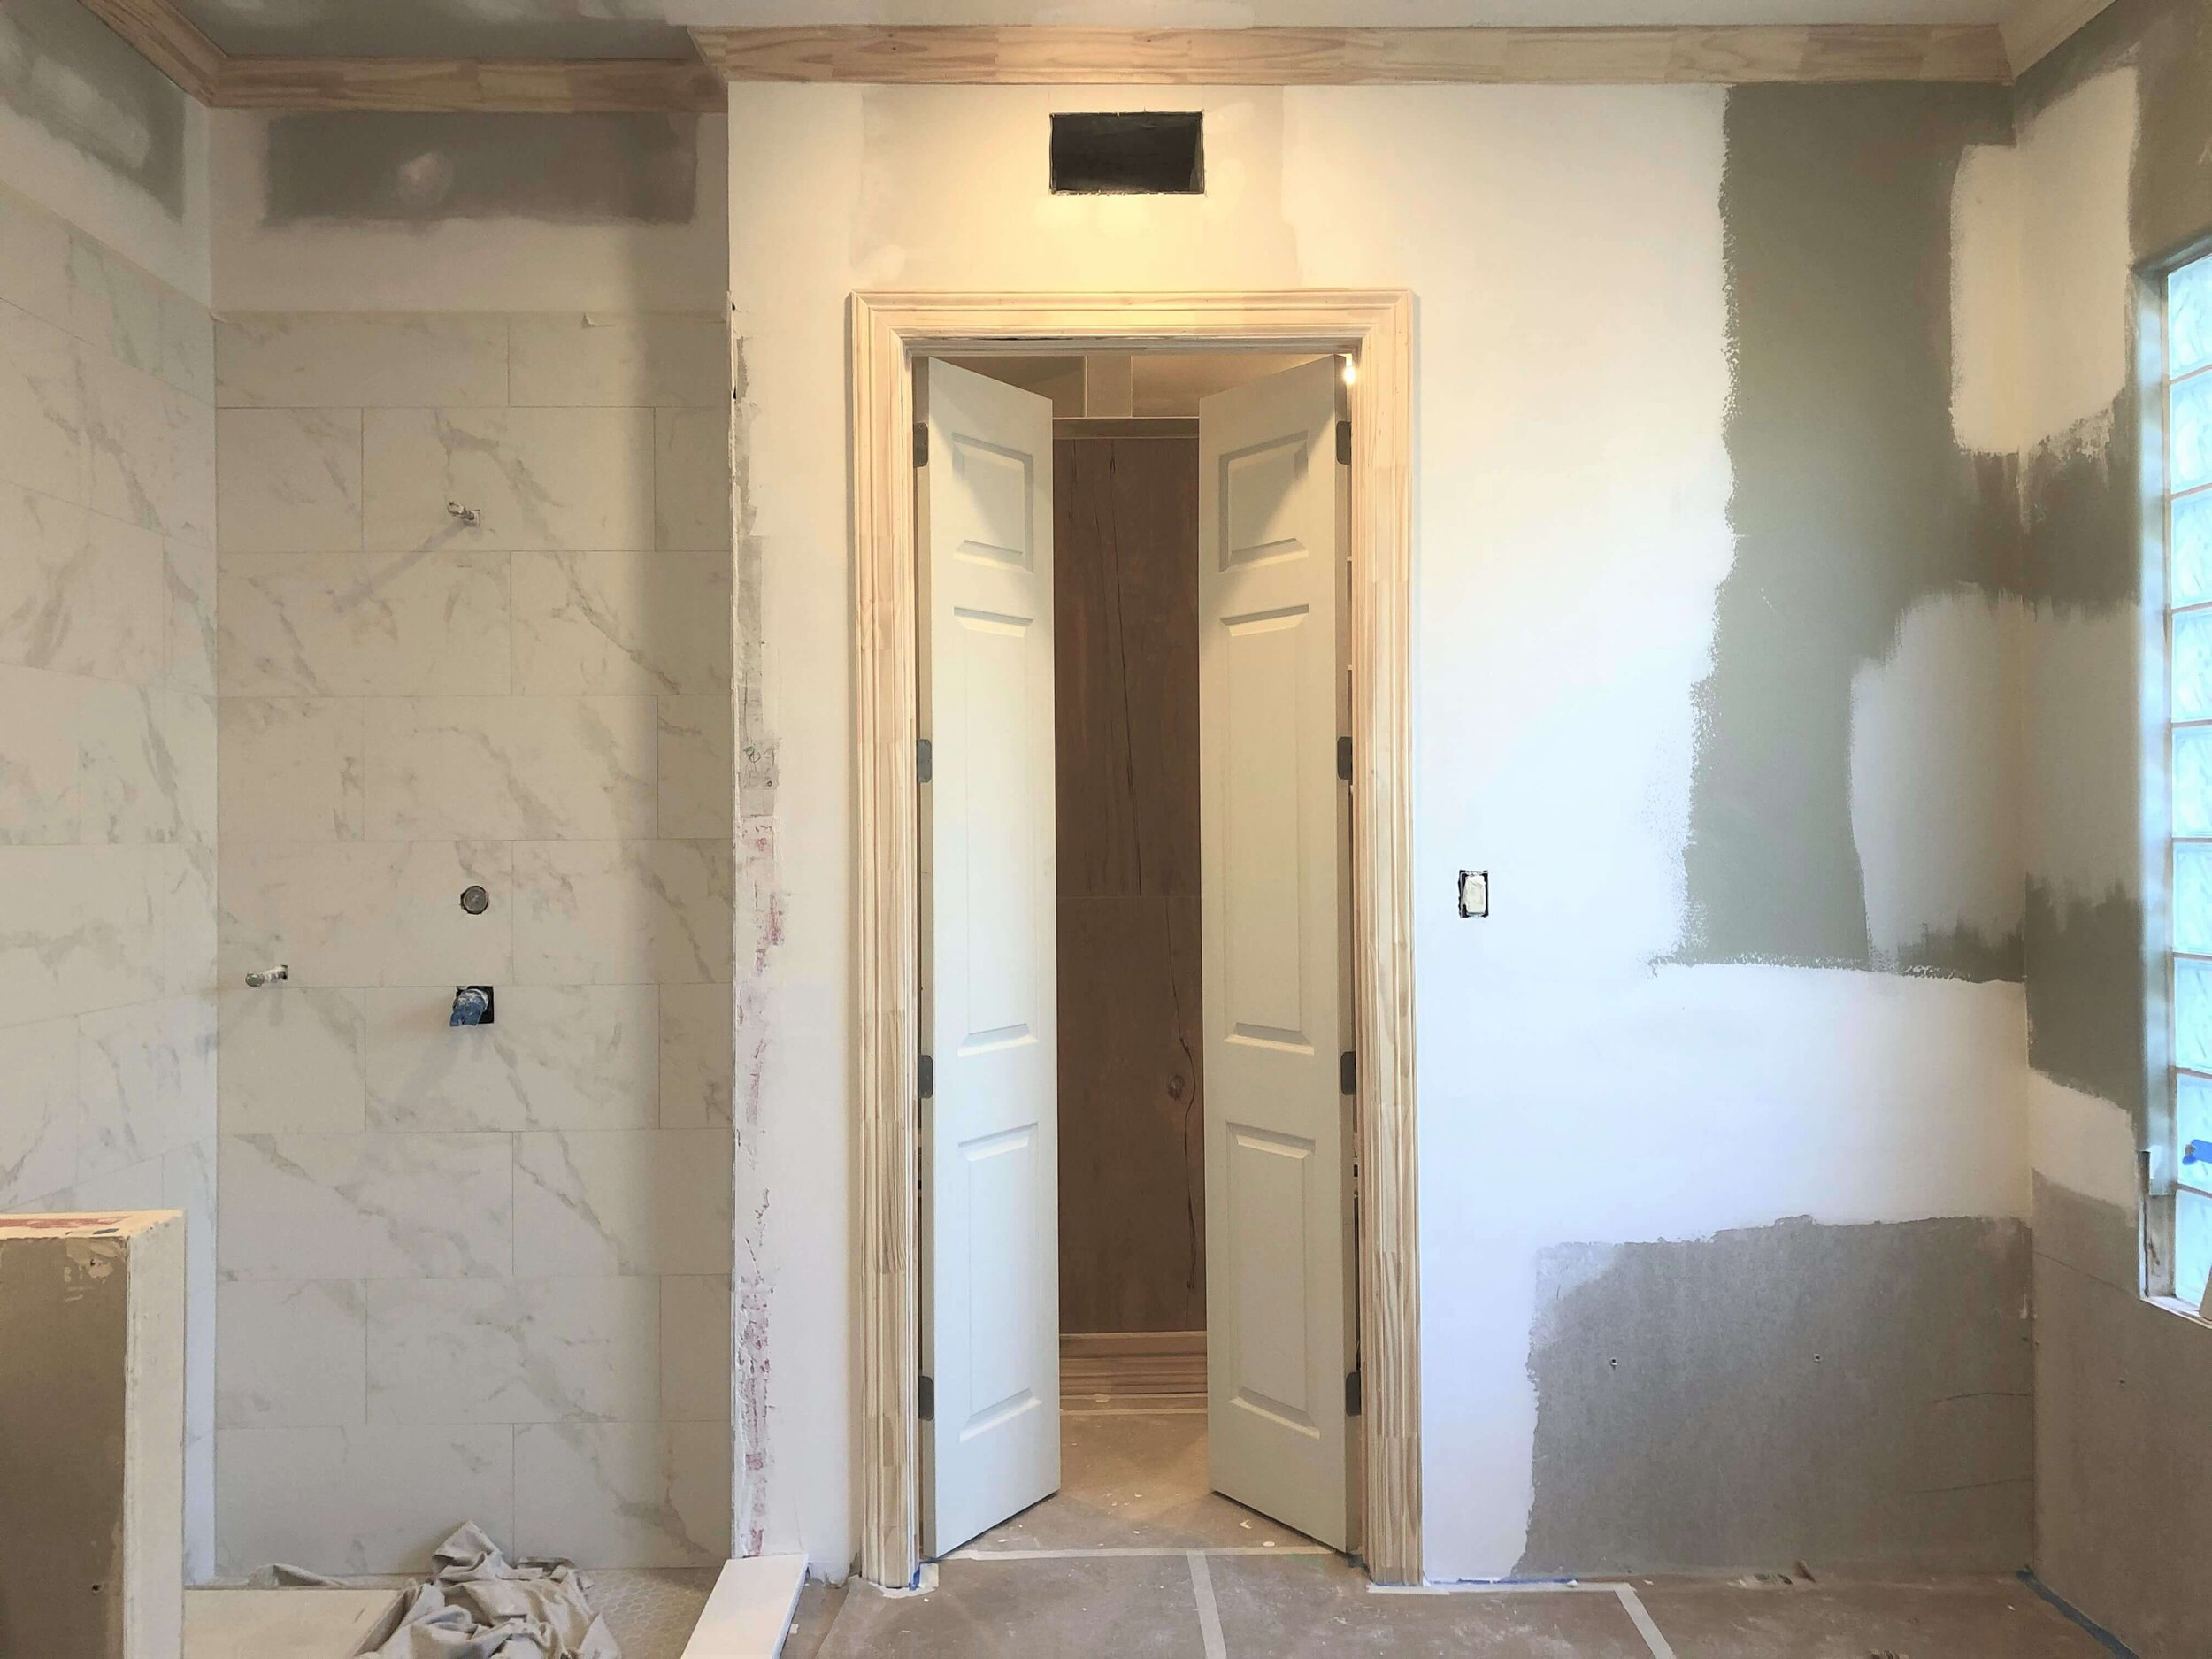 Planning A Bathroom Remodel Consider The Layout First Designed